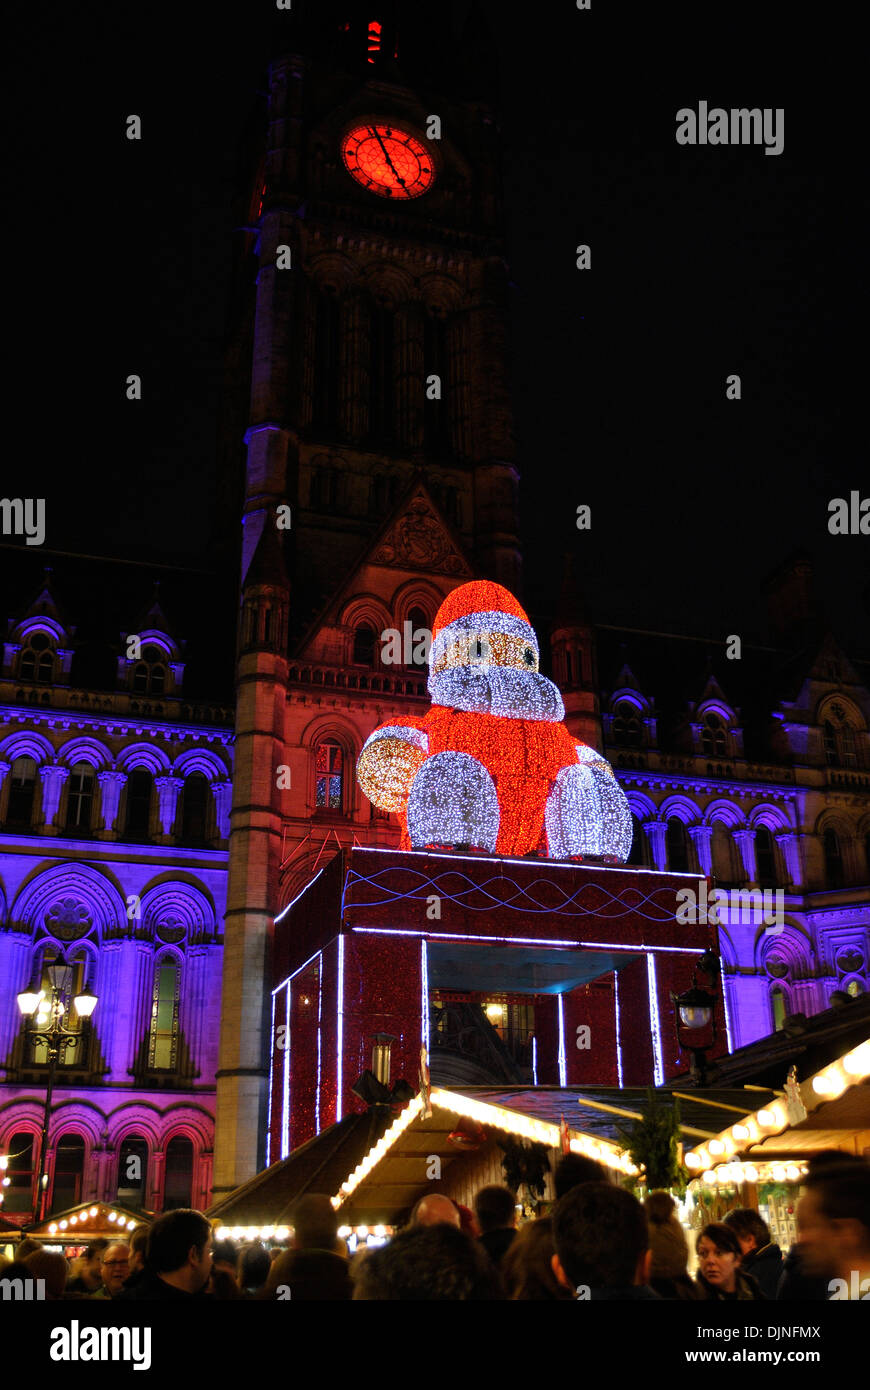 Manchester Christmas Markets 2013, in Albert Square, in front of Manchester Town Hall - Stock Image